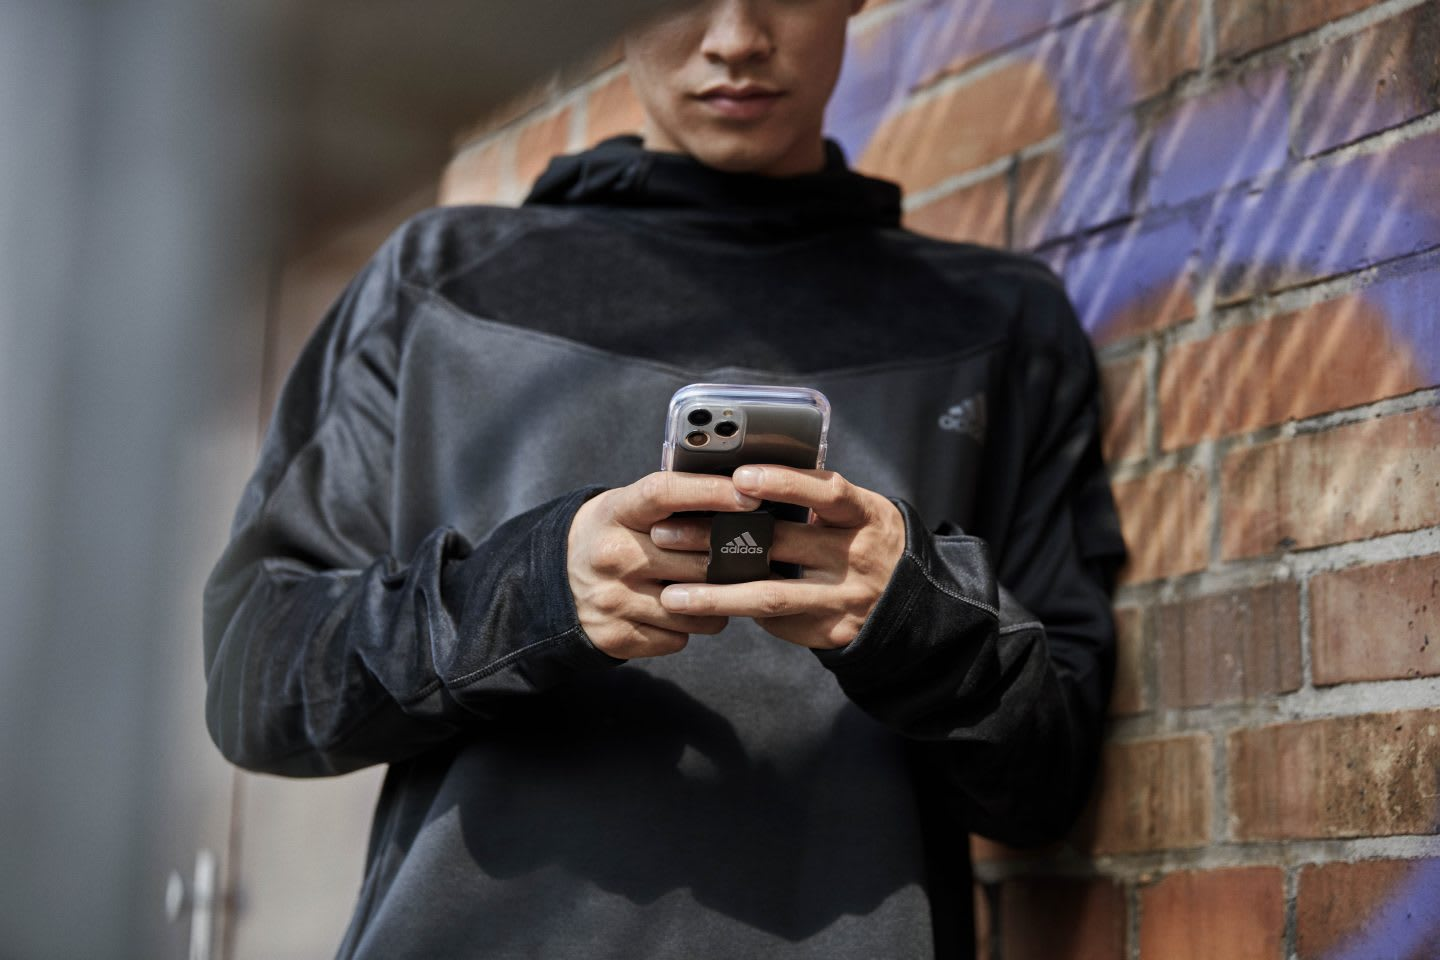 Man wearing black texting on mobile phone with black adidas case while leaning on brick wall, adidas, mobile, digital, remote, technology